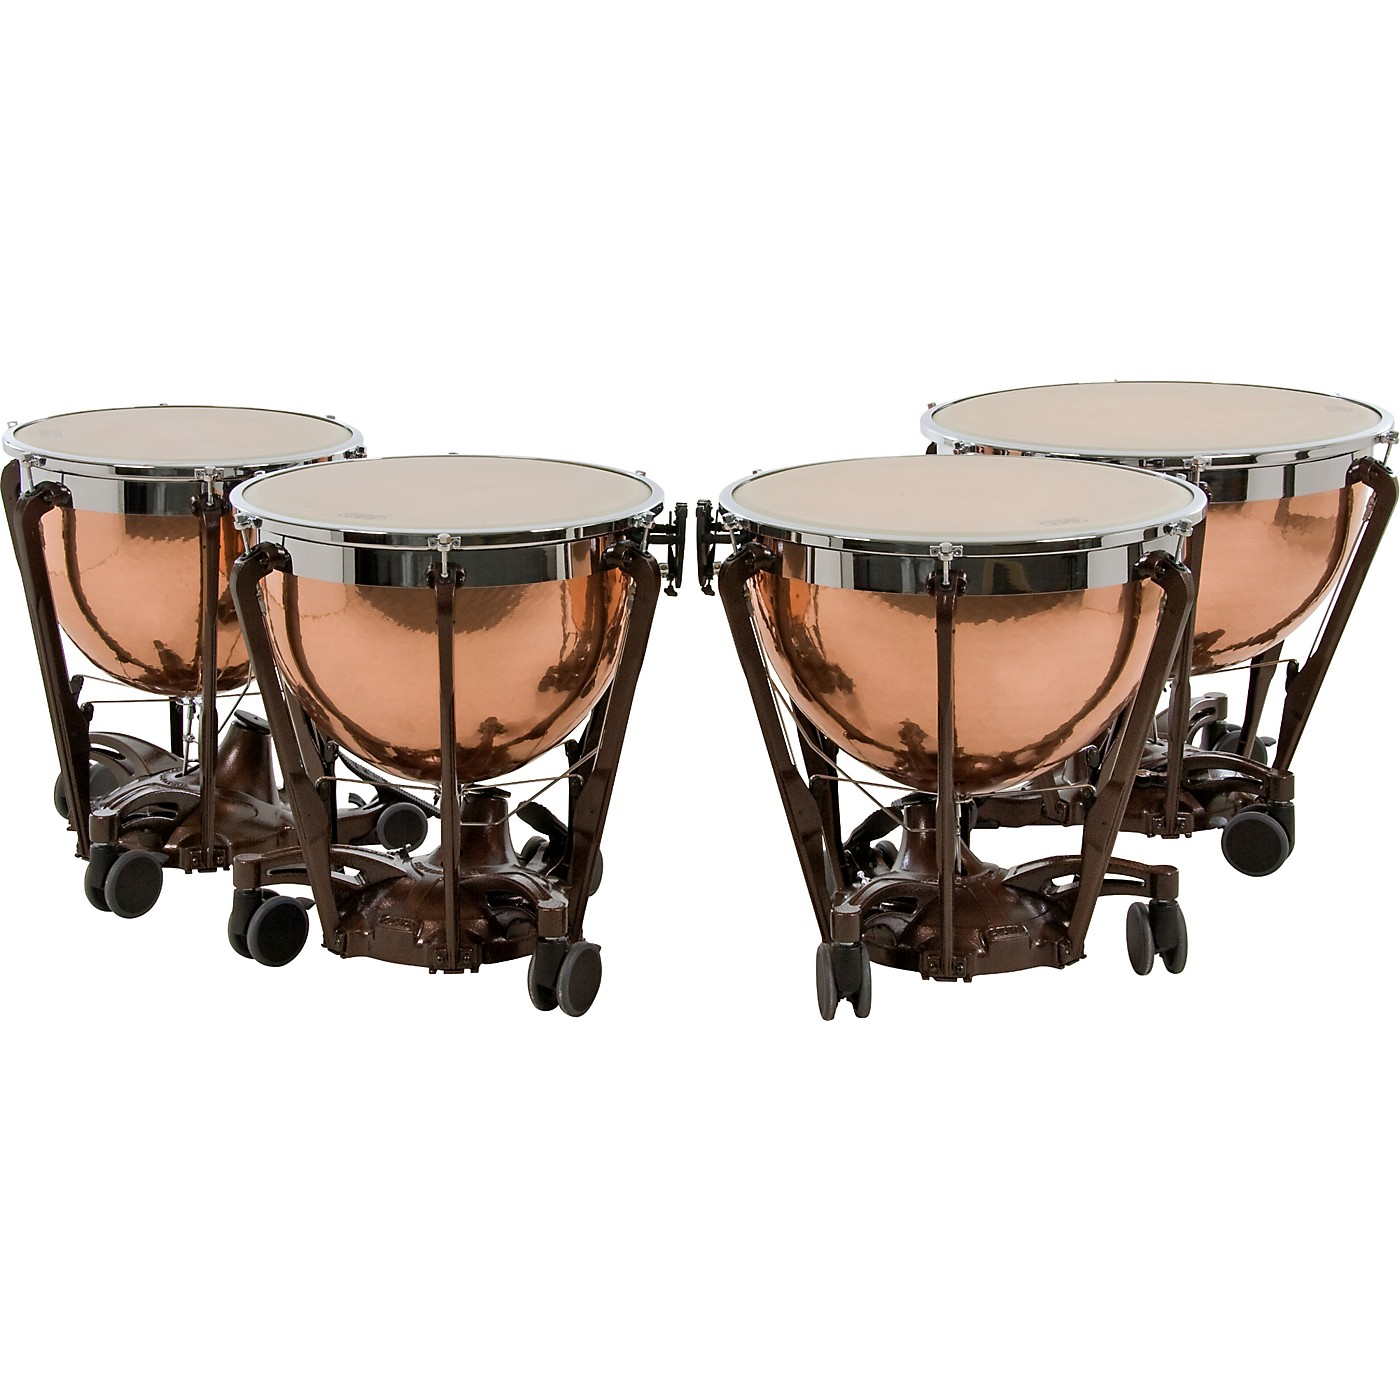 Adams Professional Series Generation II Hammered Copper Timpani, Set of 4 thumbnail